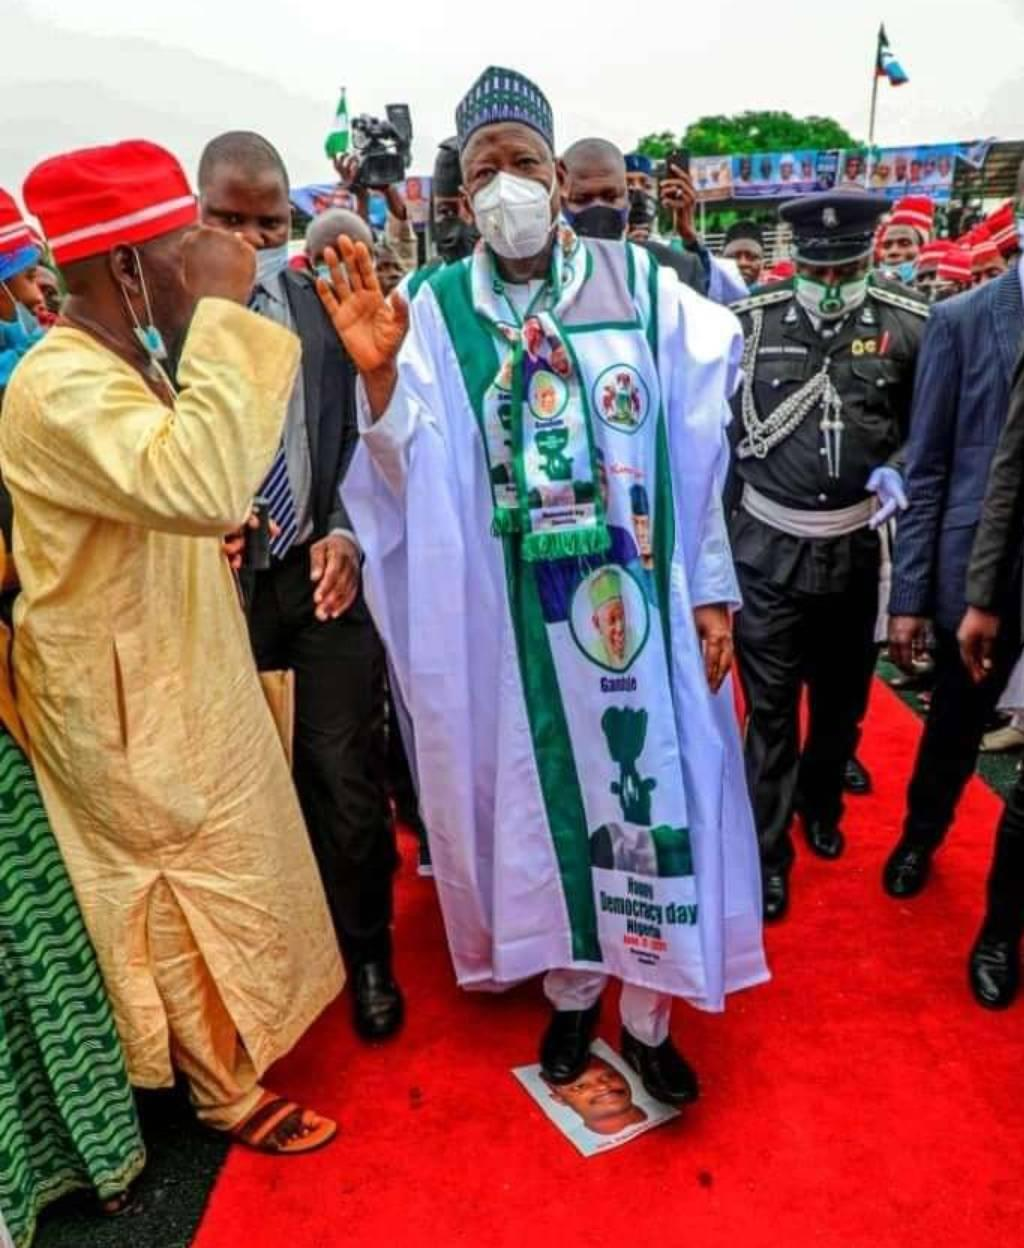 Ganduje steps on Kwankwaso's picture at a political rally